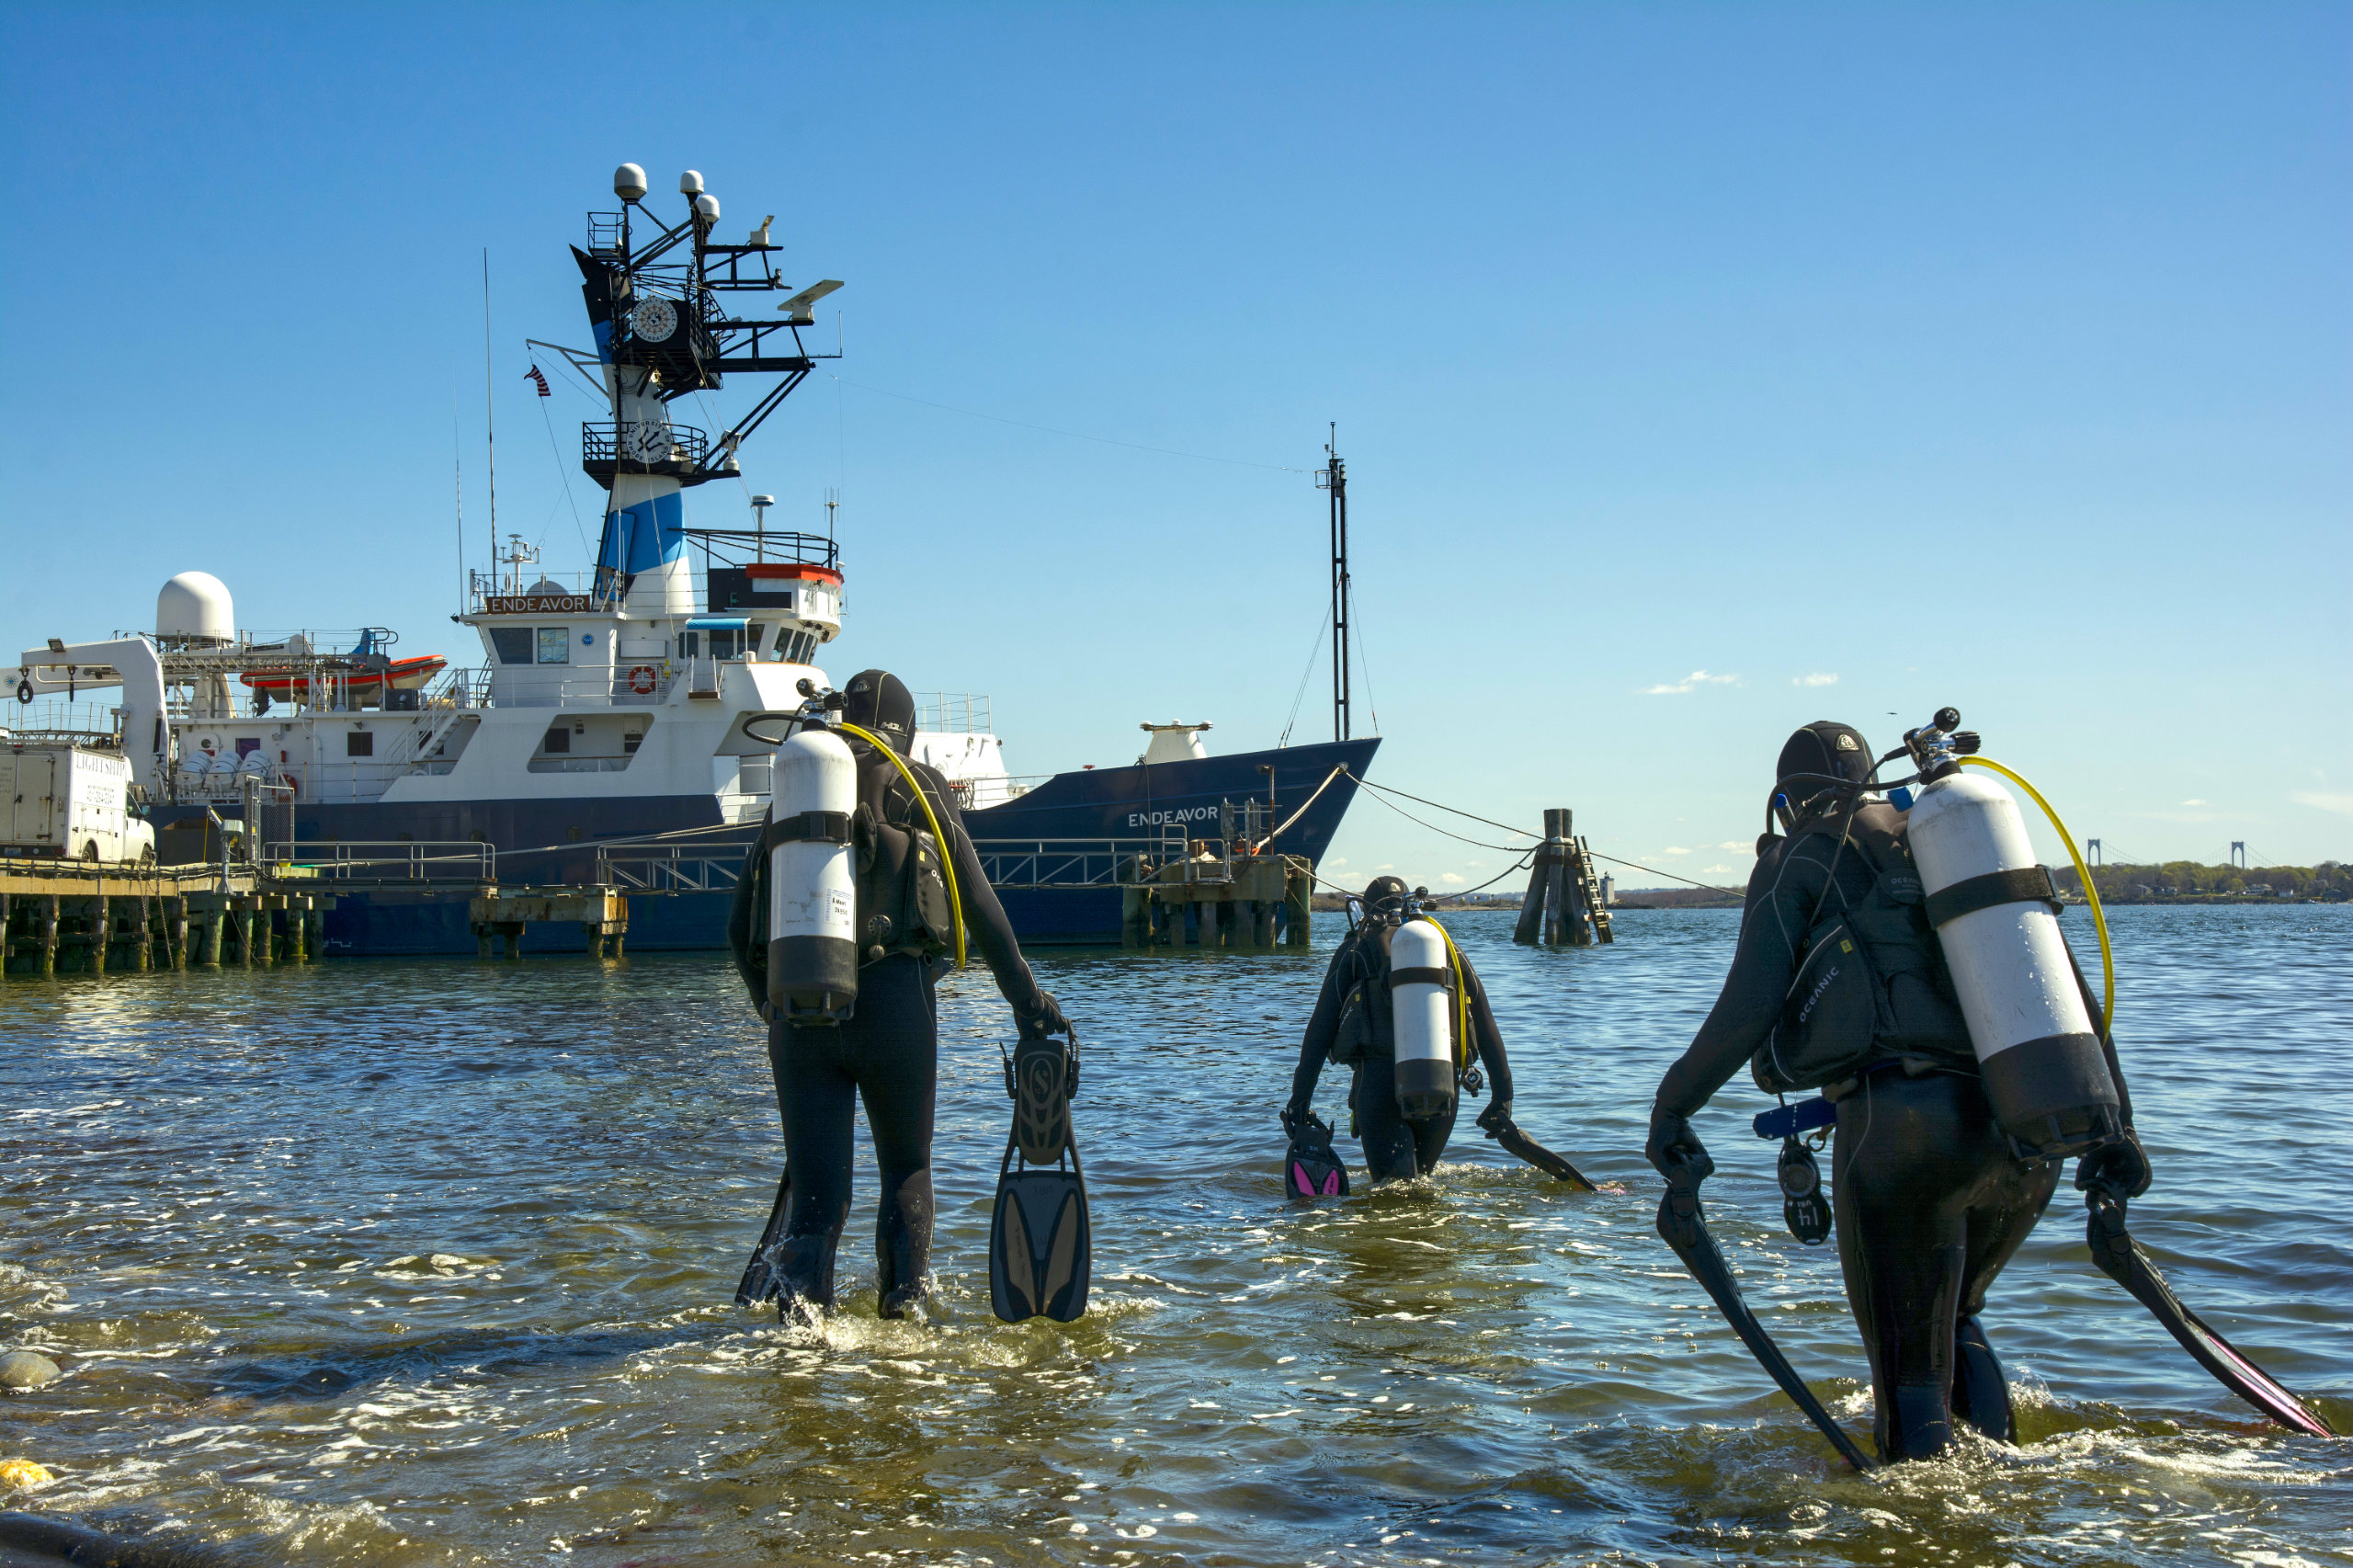 Researchers in scuba gear walk out into the ocean to begin a dive.